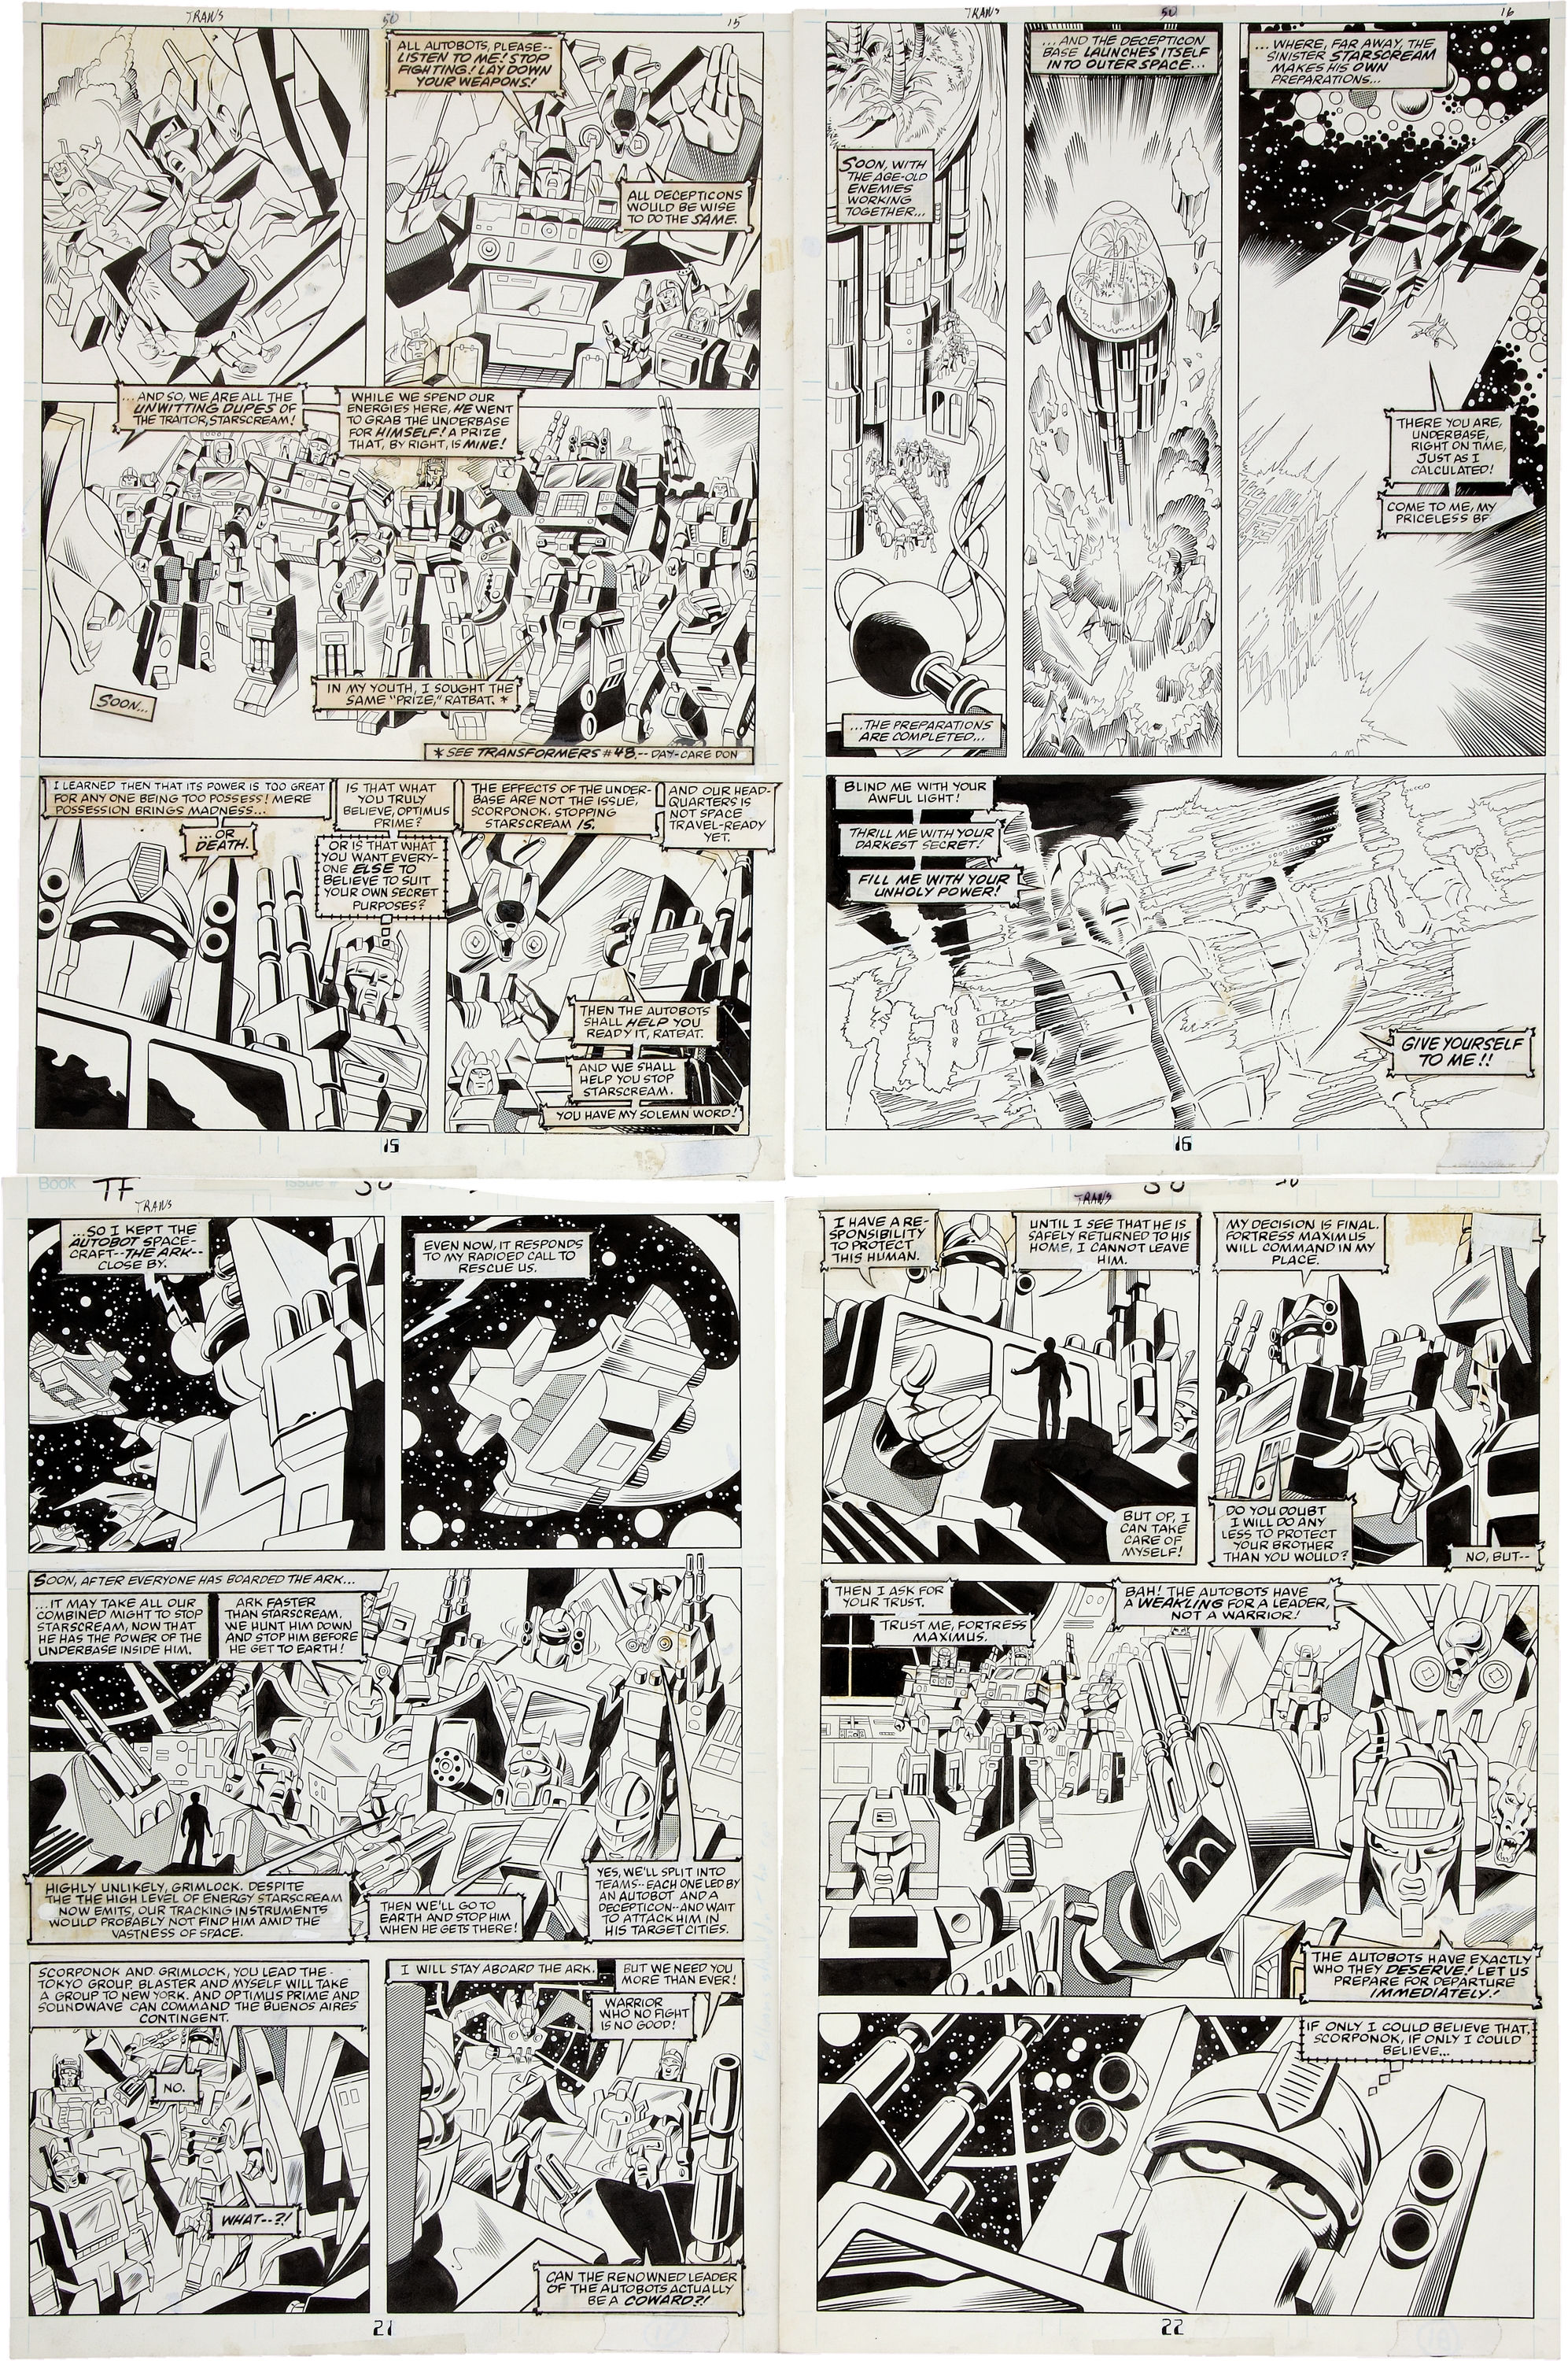 Be Nelson Yomtov! (Colorists, Tackle an Original Transformers Marvel Comics Page!)-jose-delbo-transformers-50-page-03.jpg